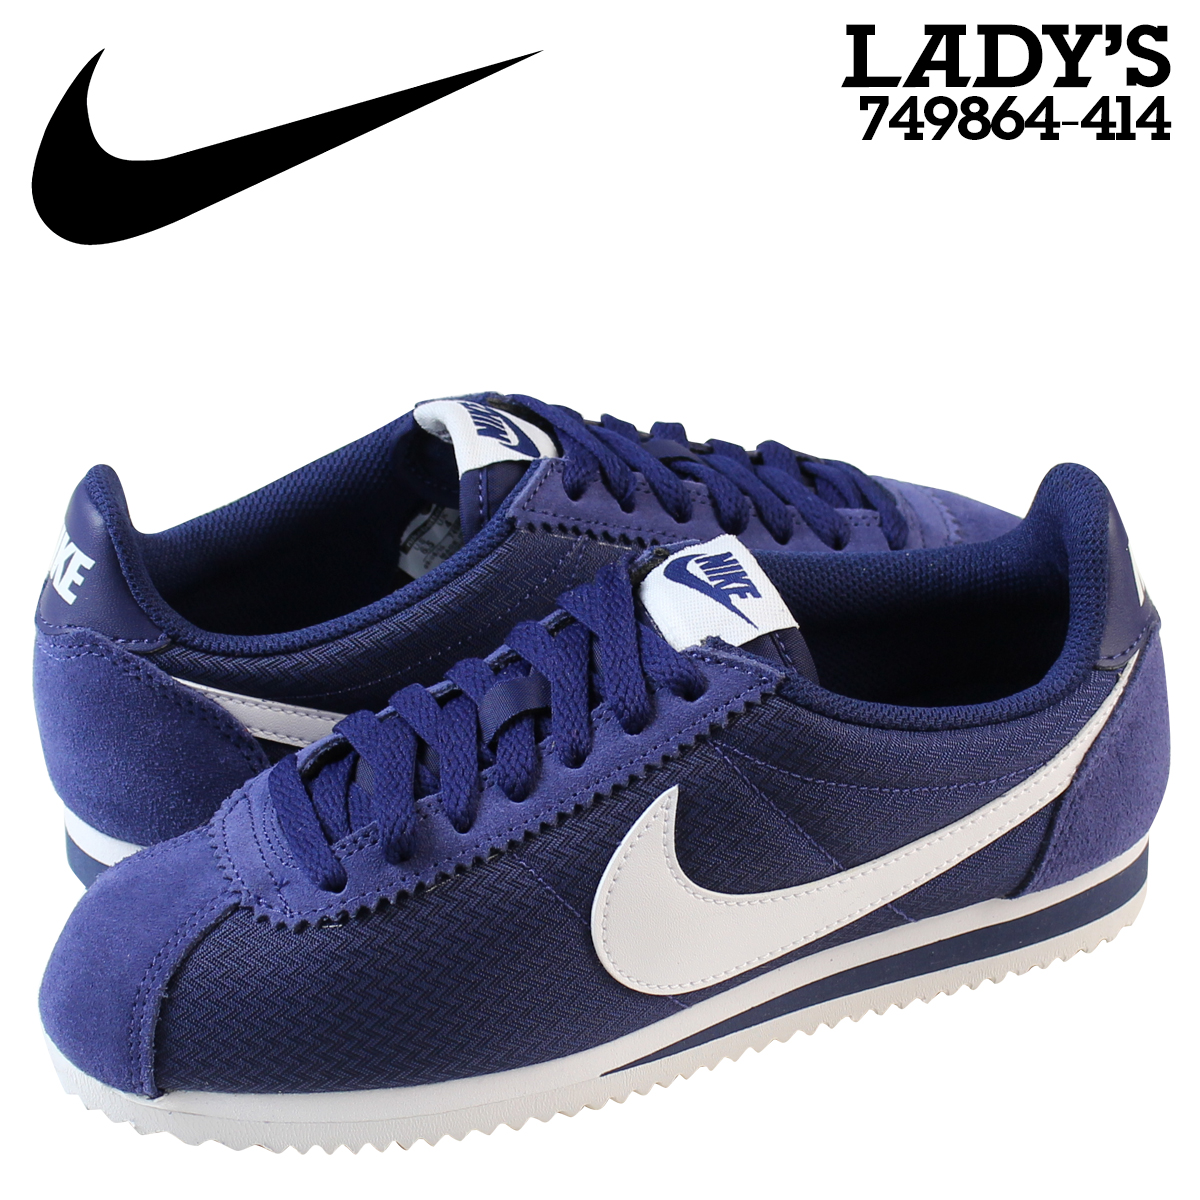 40a273f99f10 Whats up Sports  NIKE Nike classic Cortez sneakers Womens WMNS CLASSIC  CORTEZ NYLON 749864-414 shoes blue